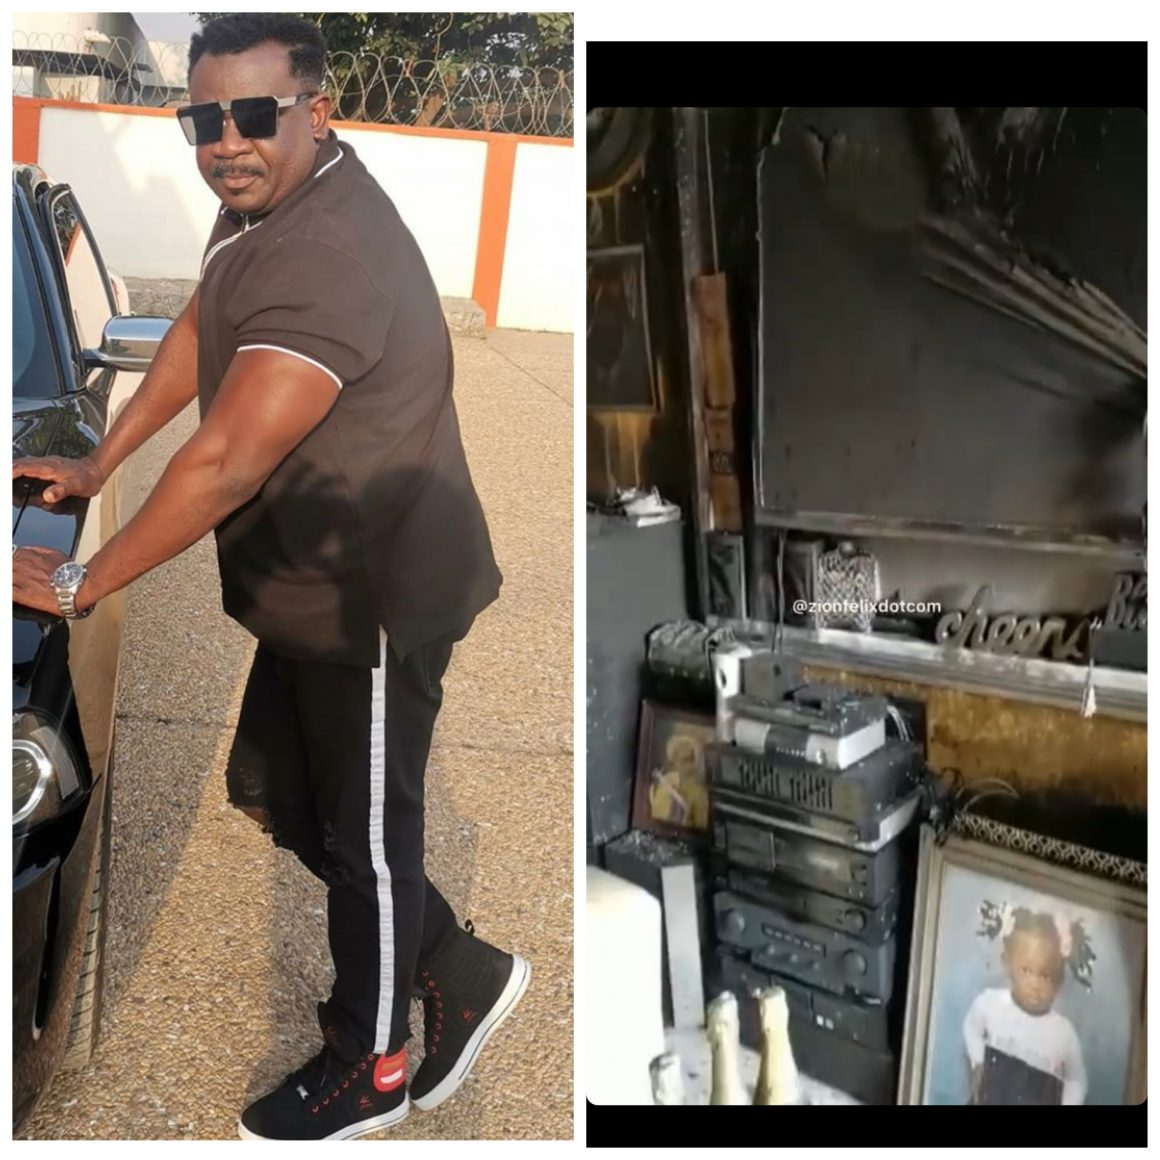 watch:-koo-fori's-house-burns-to-ashes